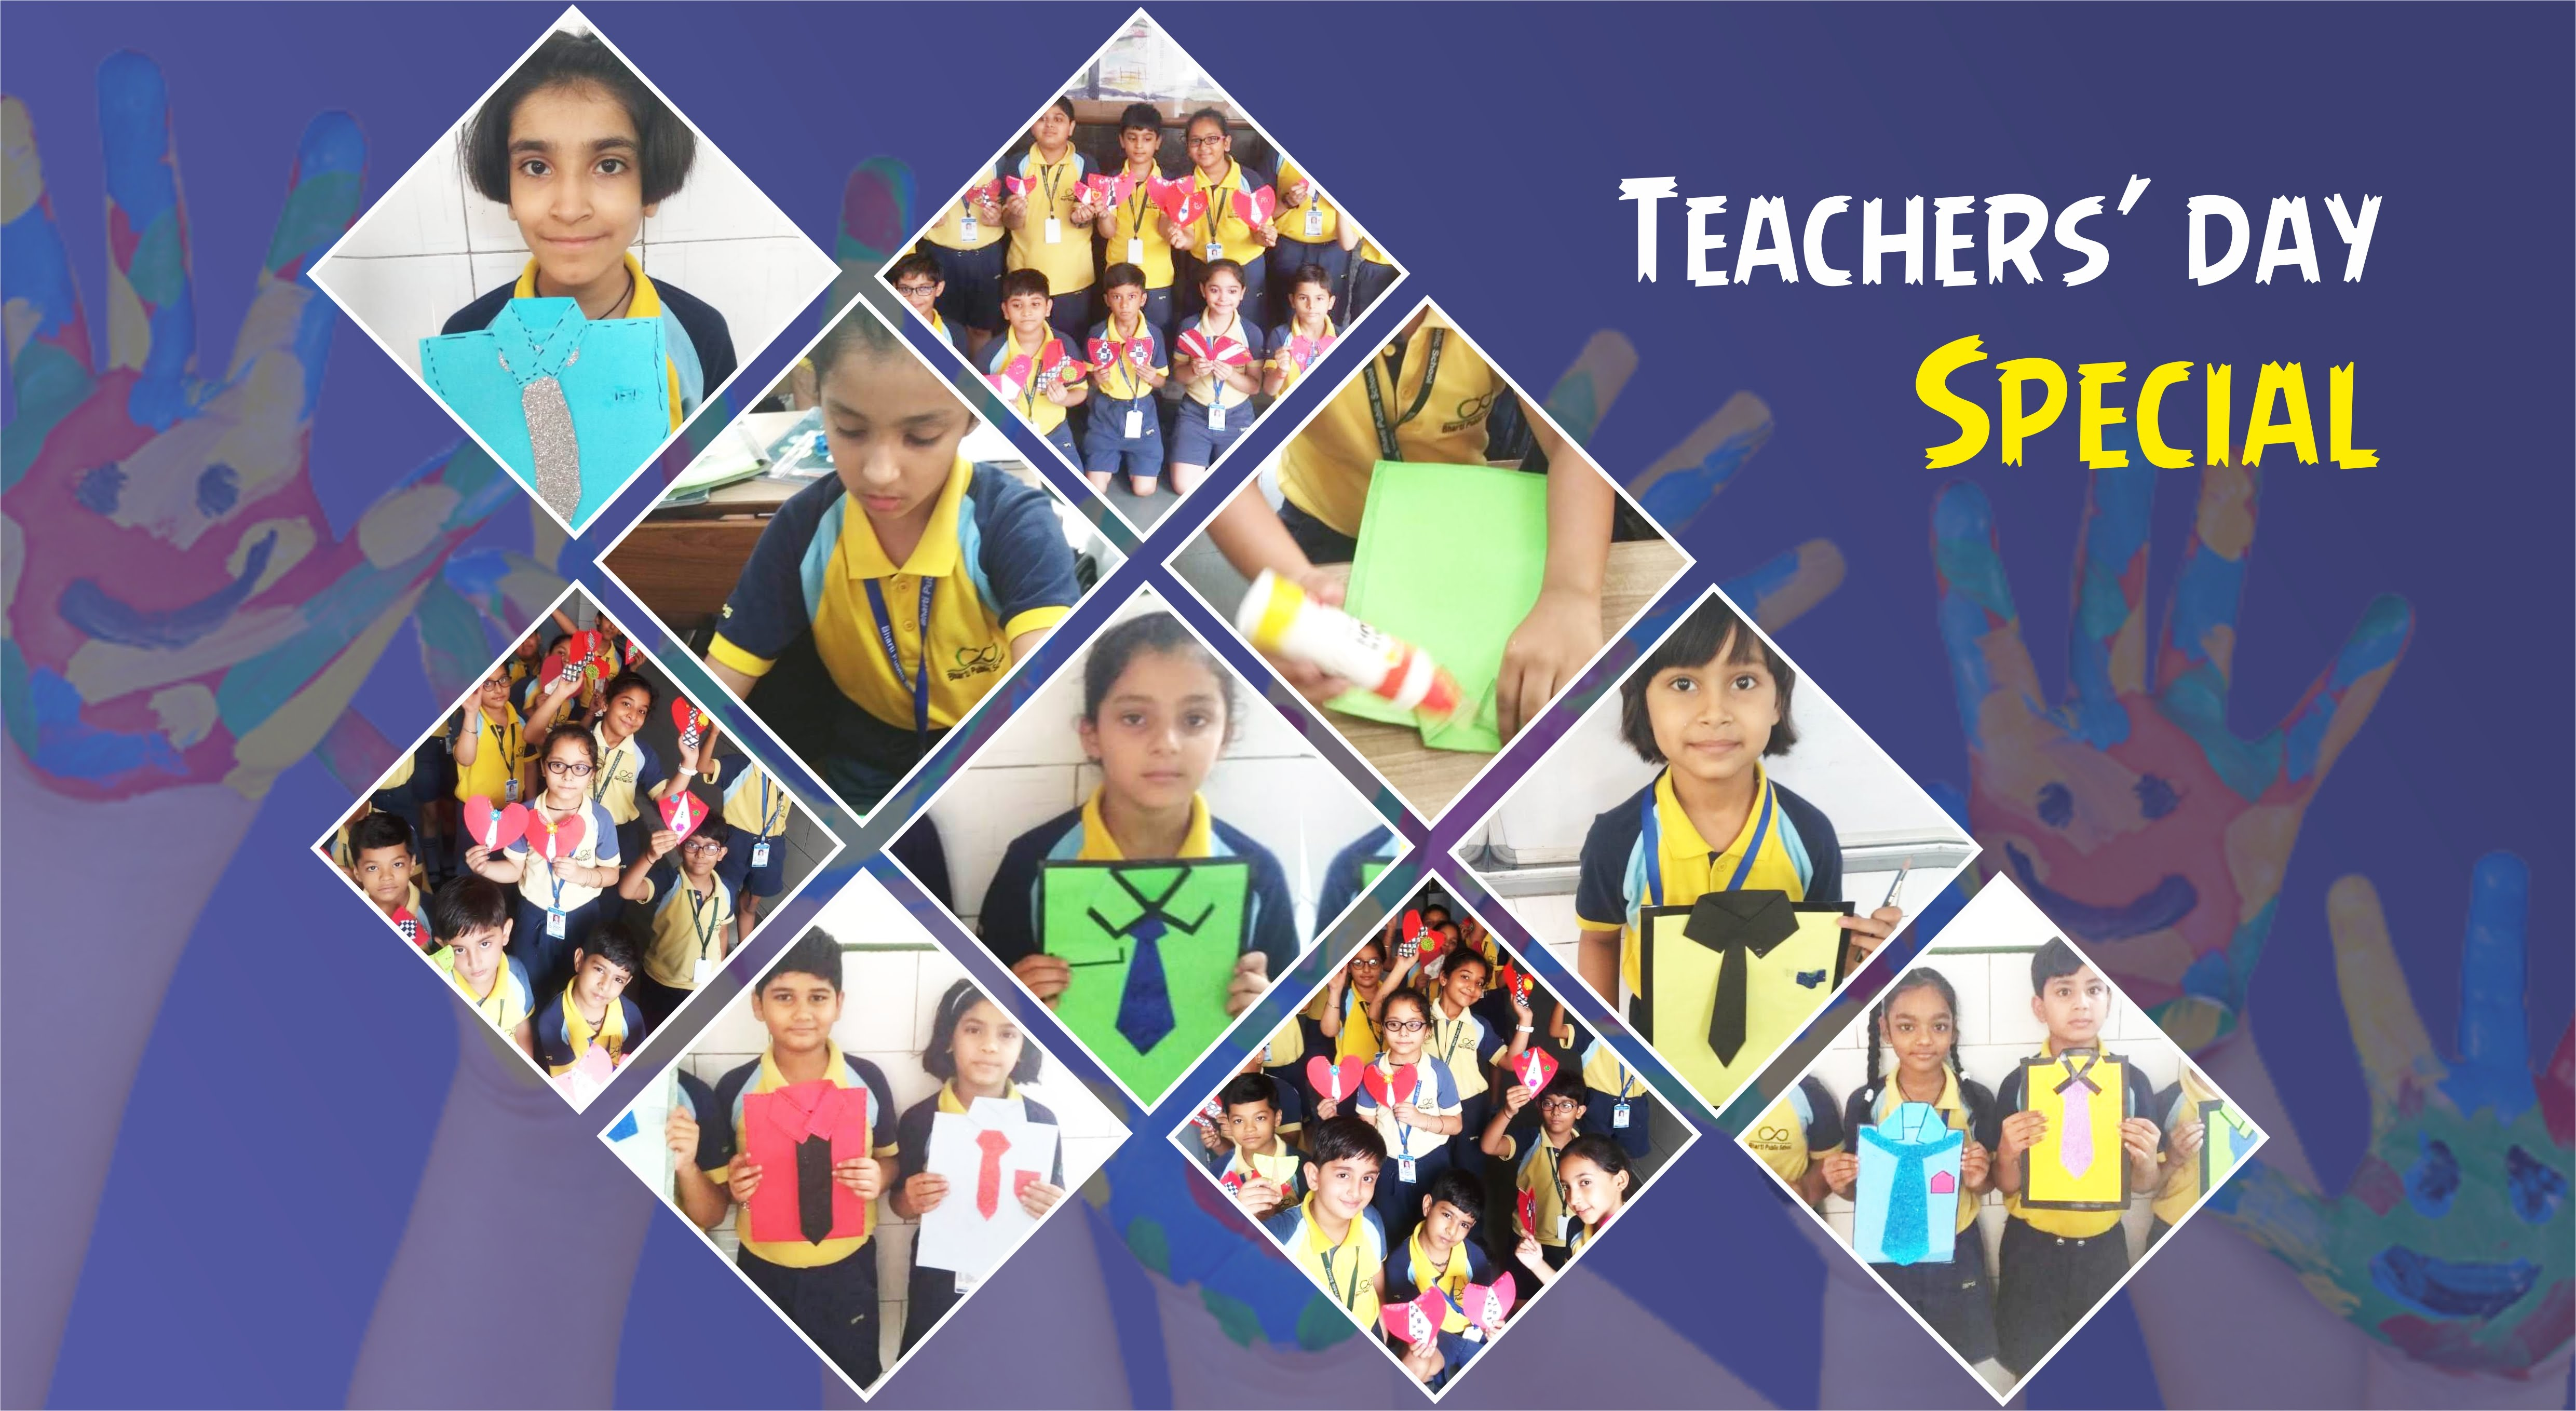 Teachers' Day Special